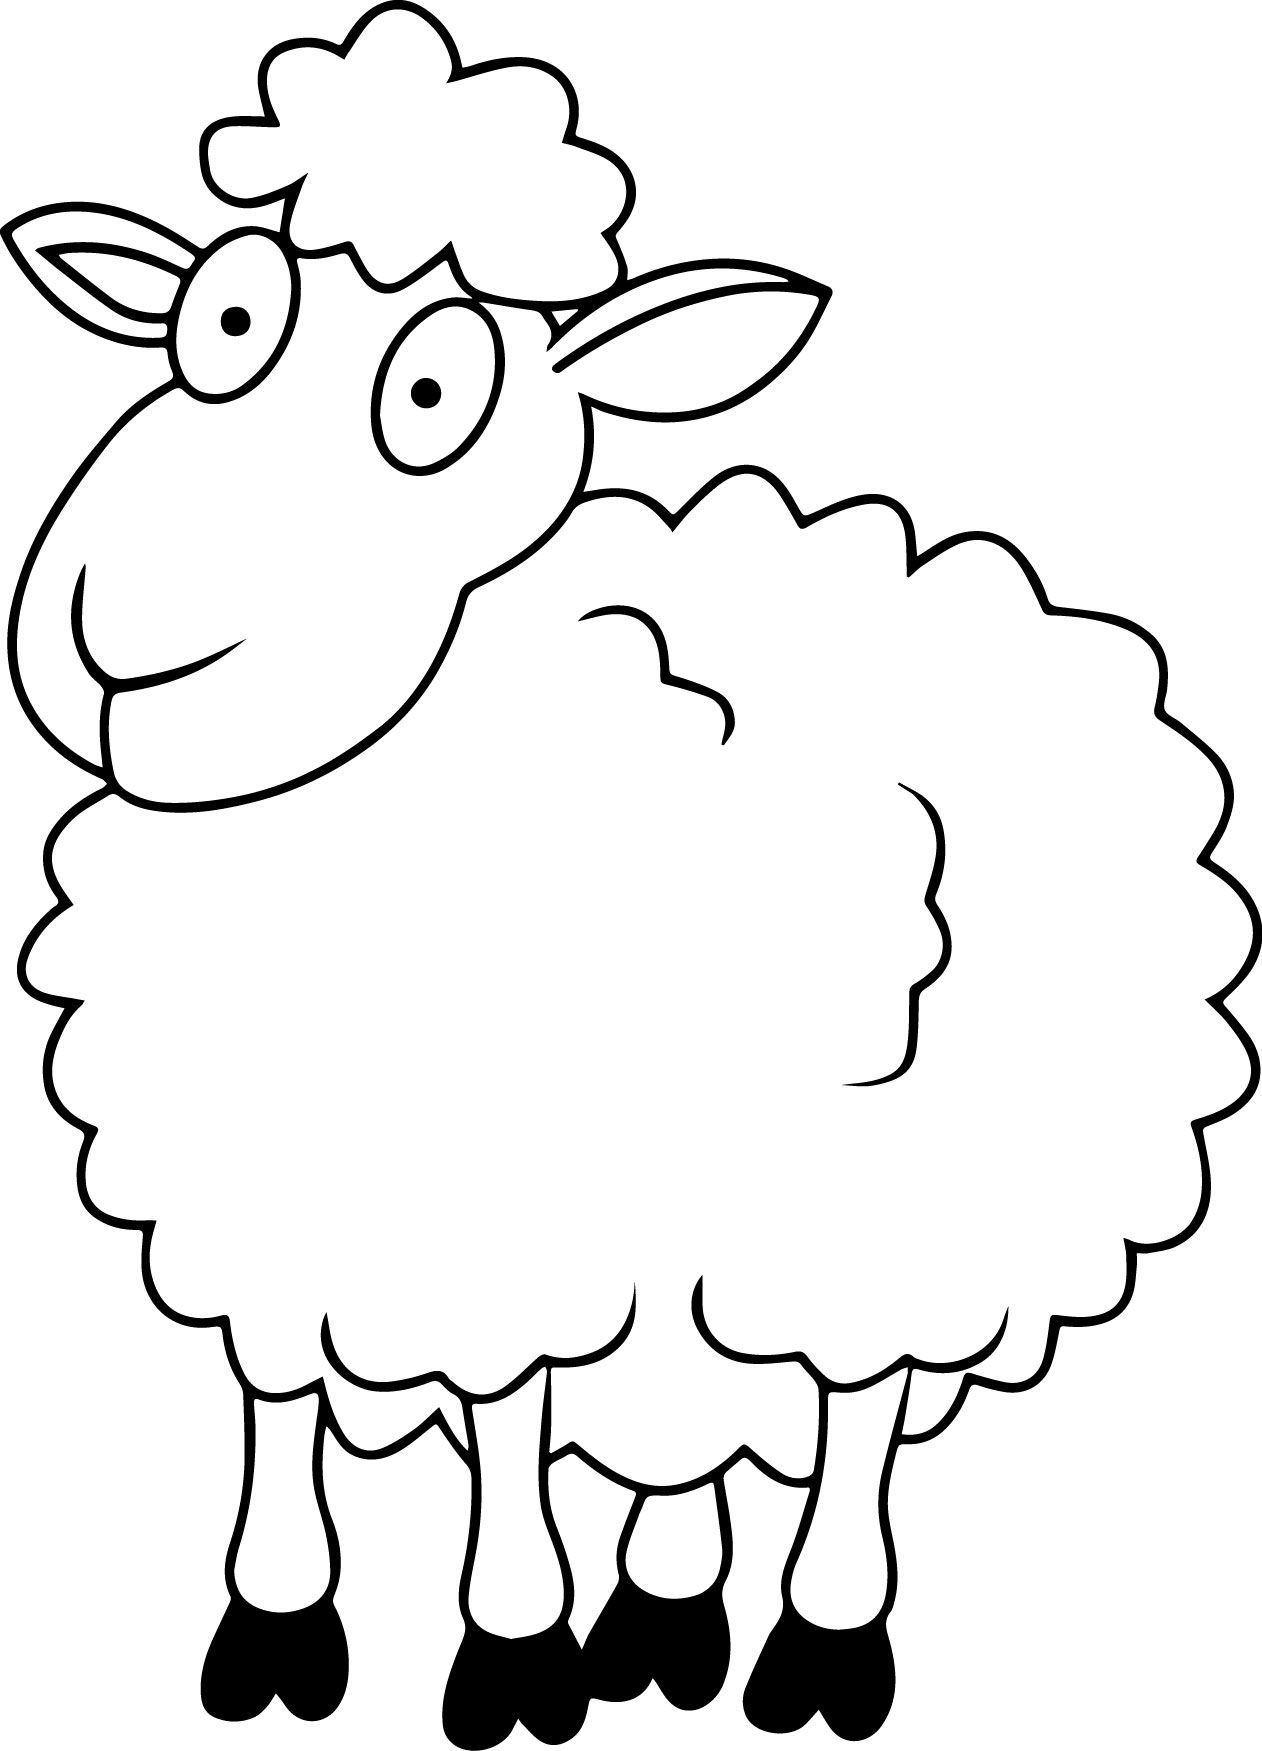 1262x1751 Proven Sheep Coloring Pages To Print